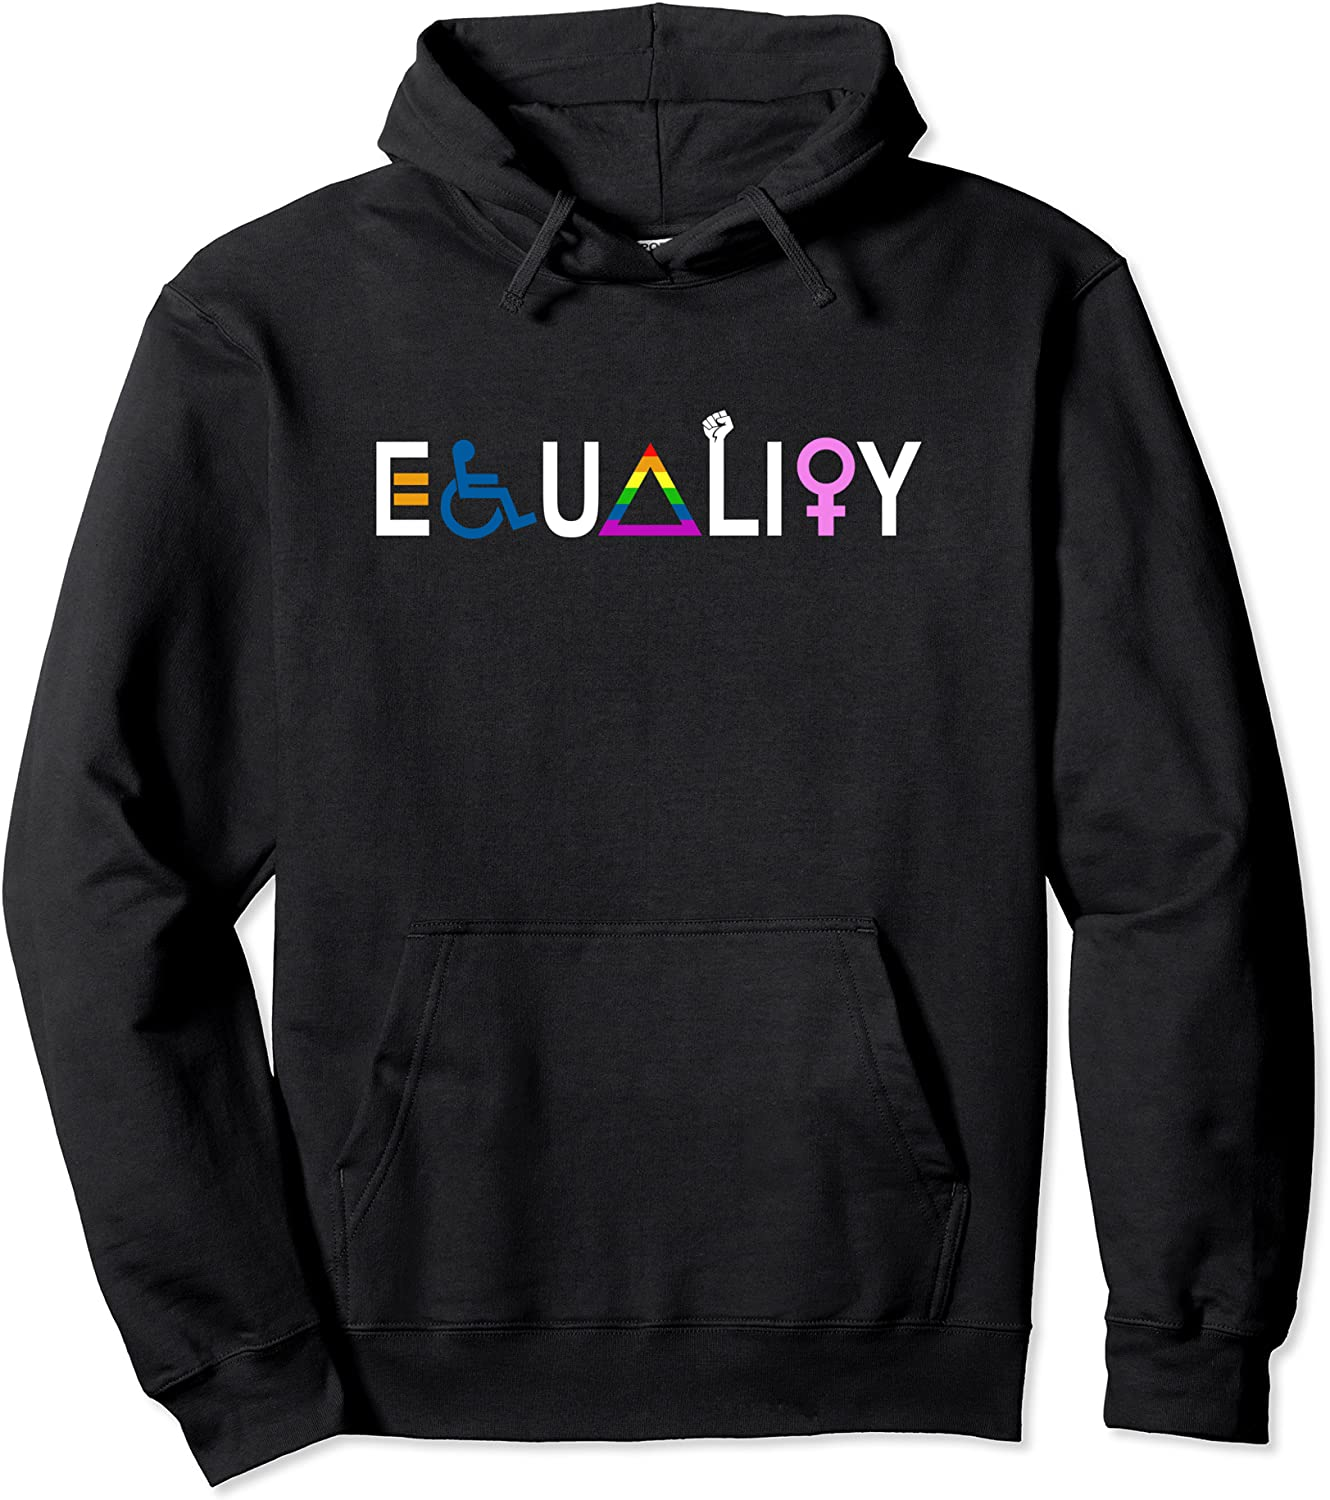 shipfree Equality and Inclusion LGBTQ Equal White Letter Cheap mail order sales Pul Civil Rights